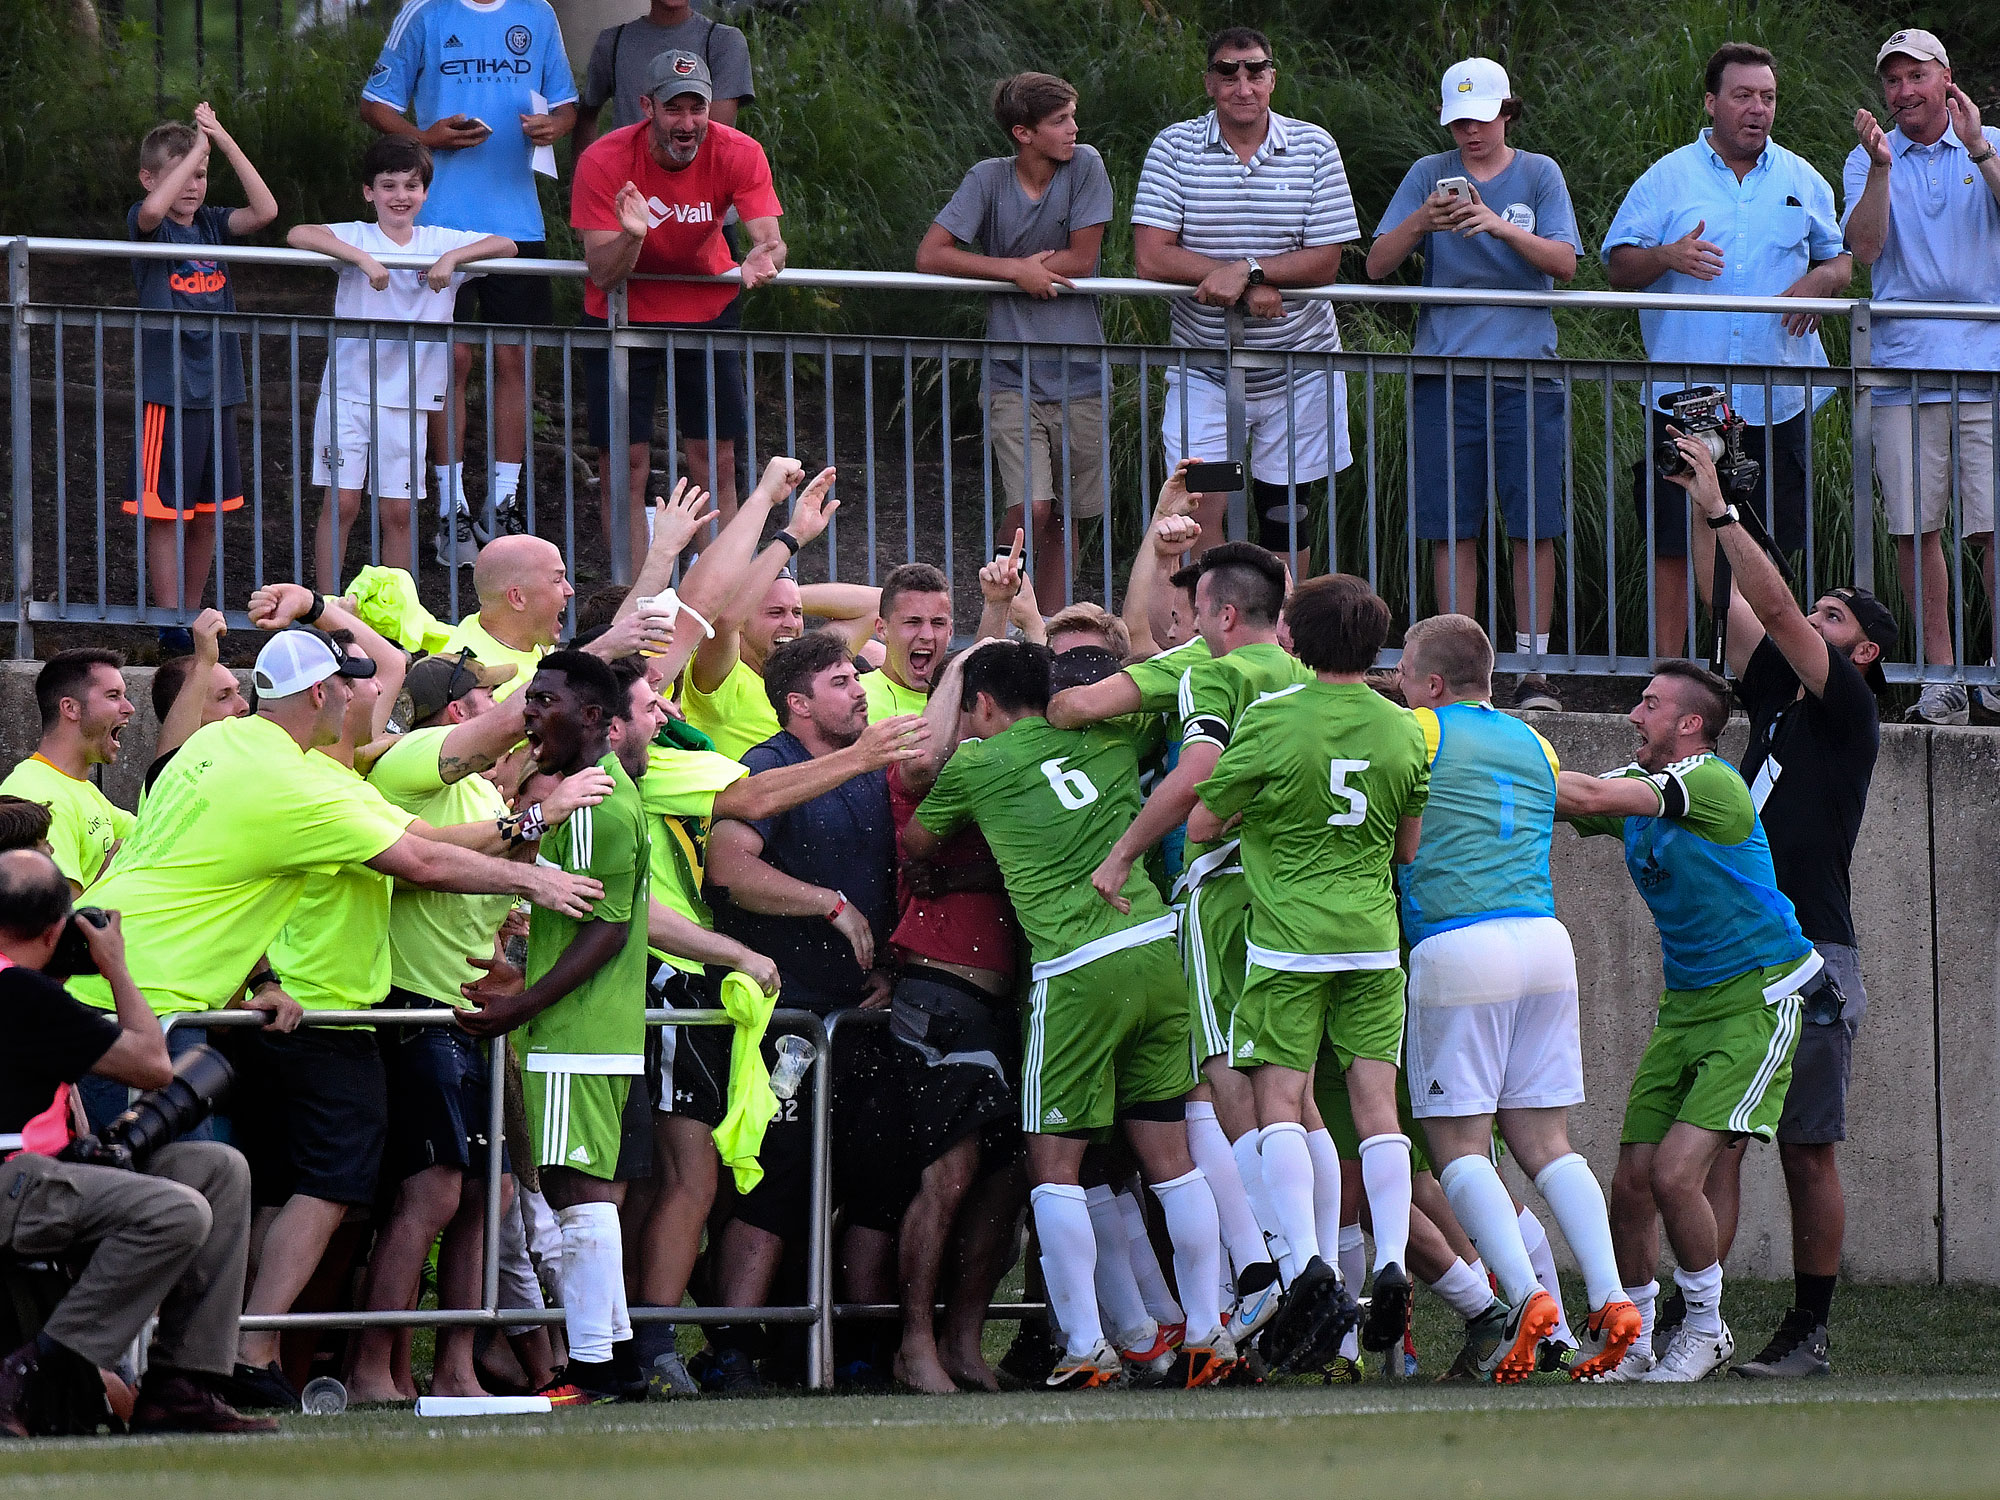 Christos FC scores a goal on D.C. United in the U.S. Open Cup